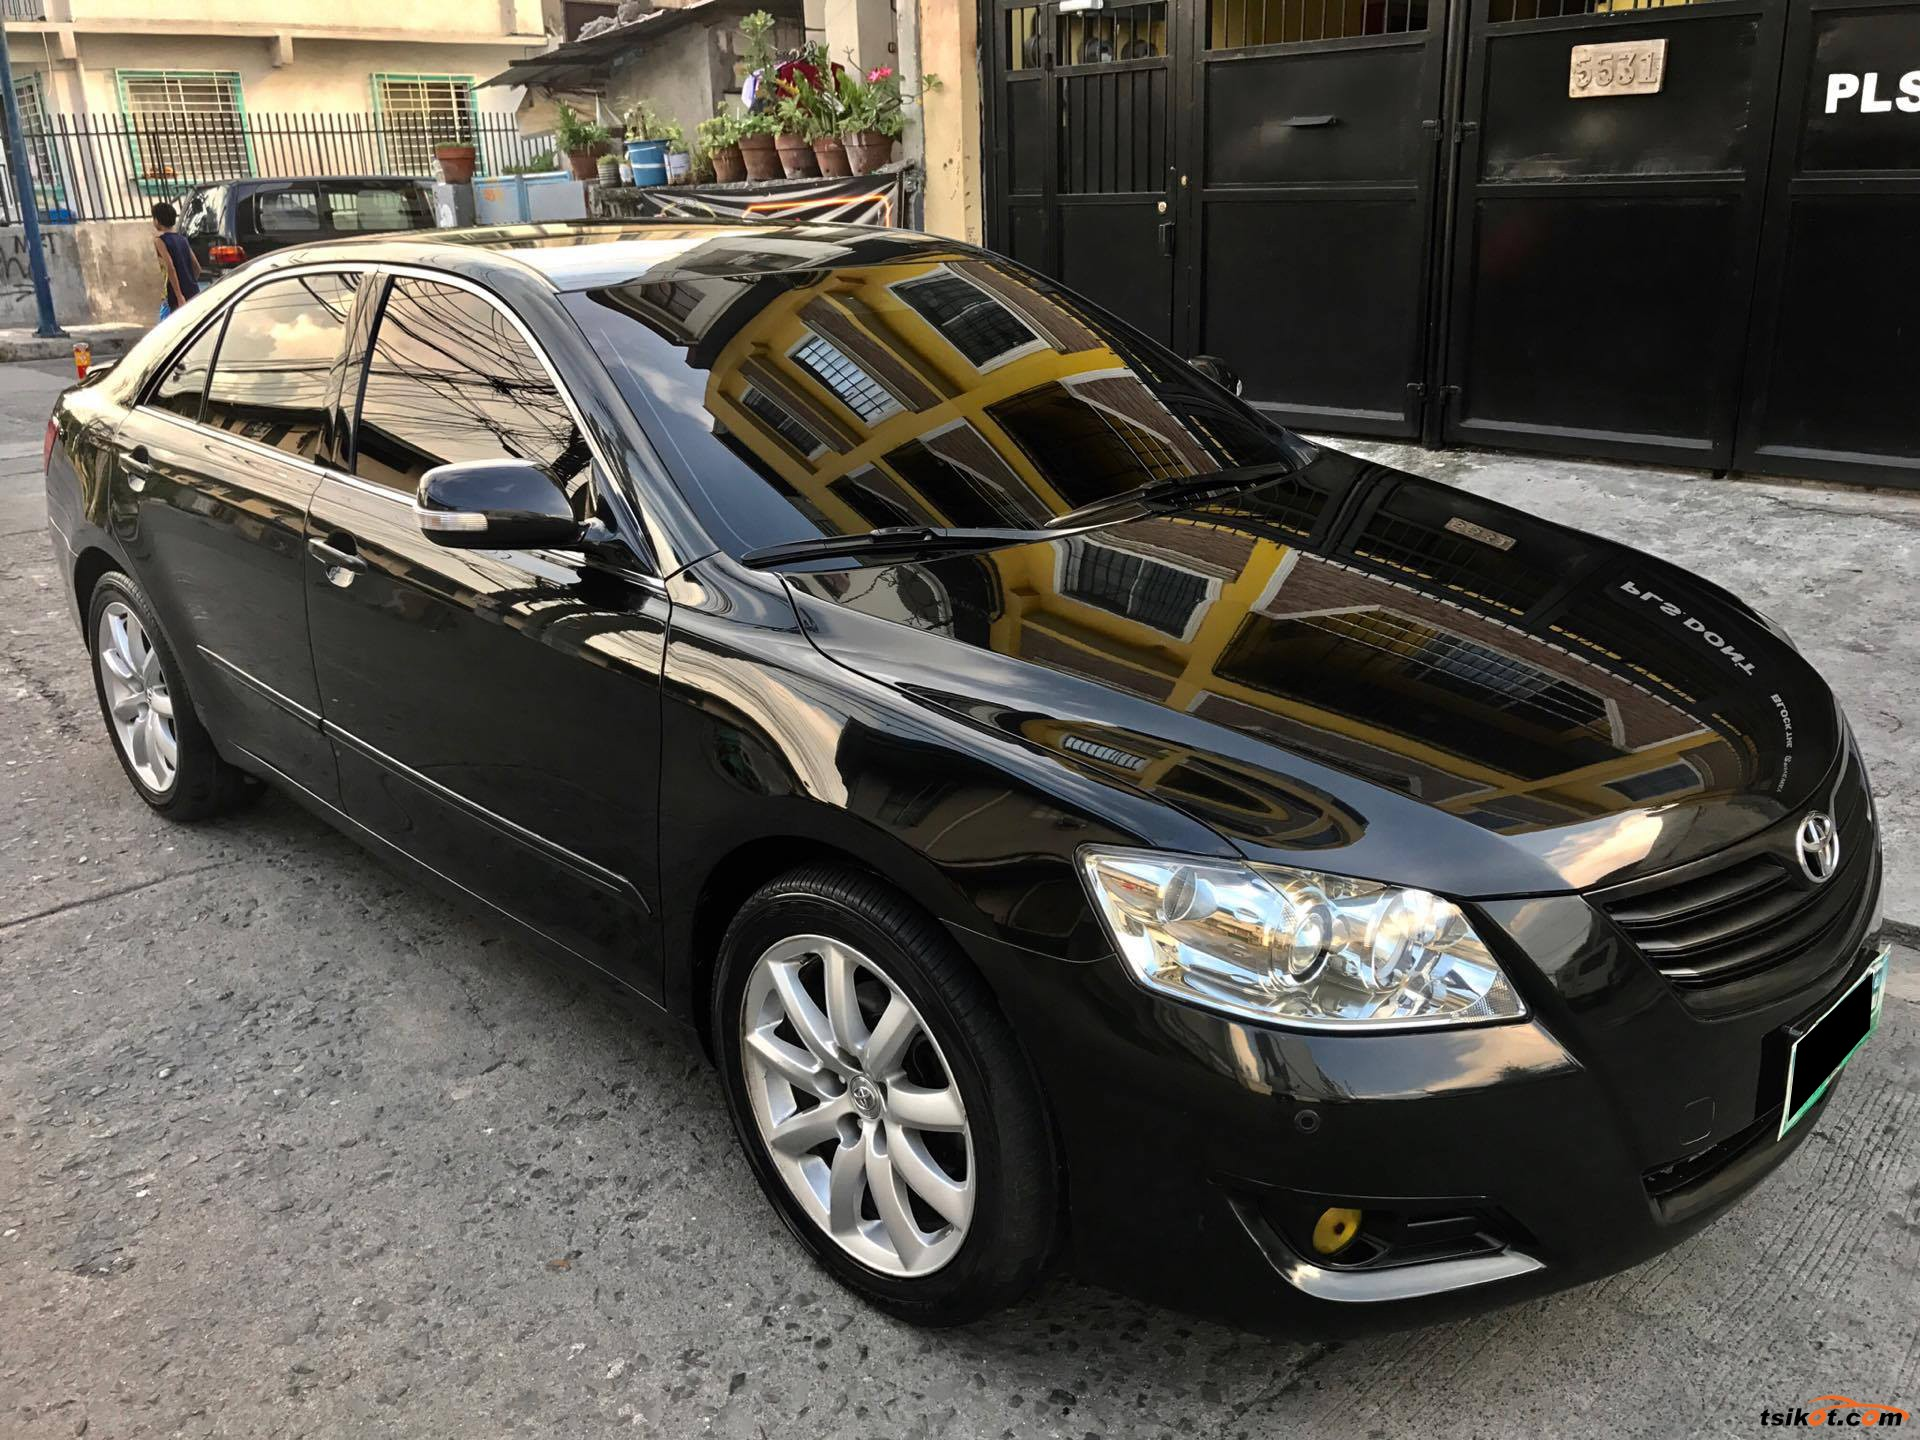 brand new toyota camry for sale in ghana harga grand veloz 2015 2007 car metro manila